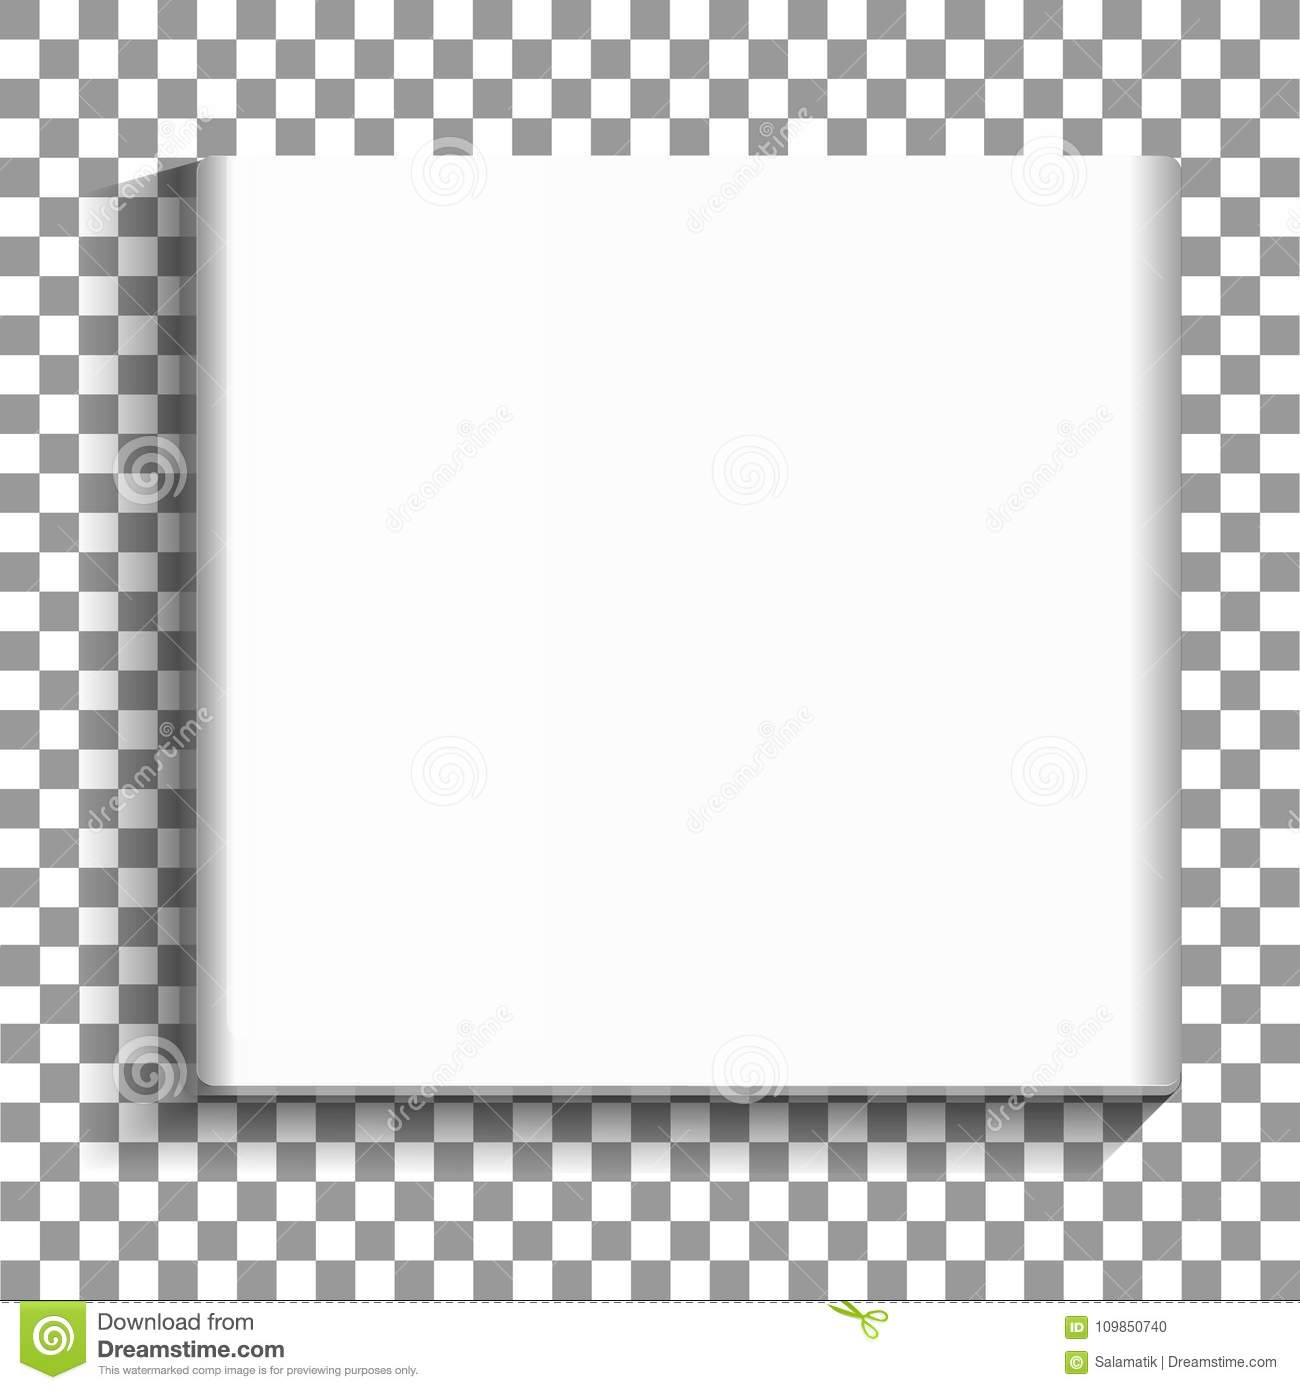 White Square Empty Picture Frame On Transparent Background. Blank ...